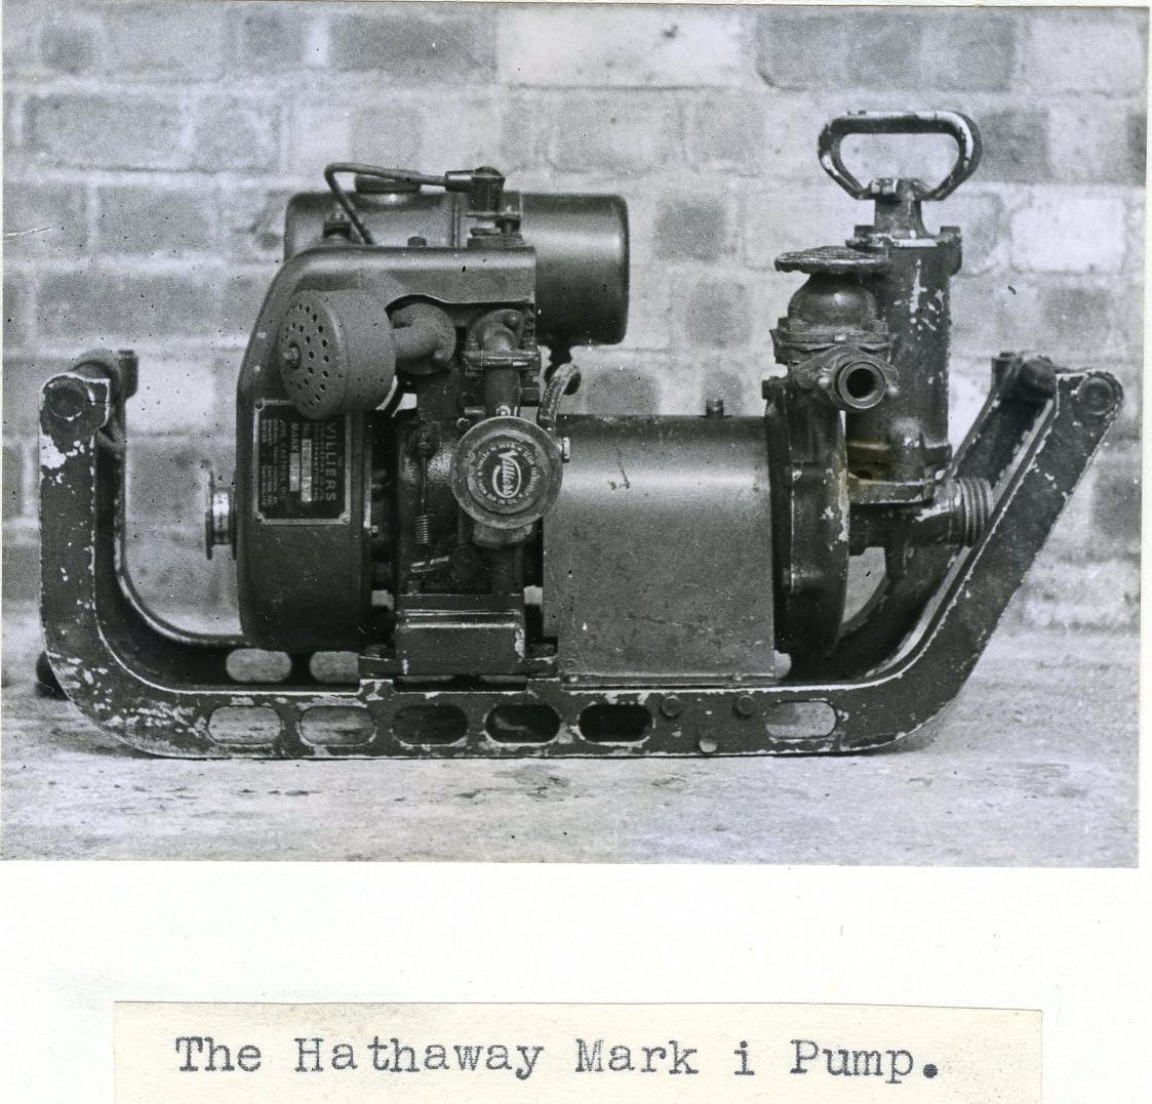 Hathaway and Worthington/Simpson Fire Pumps